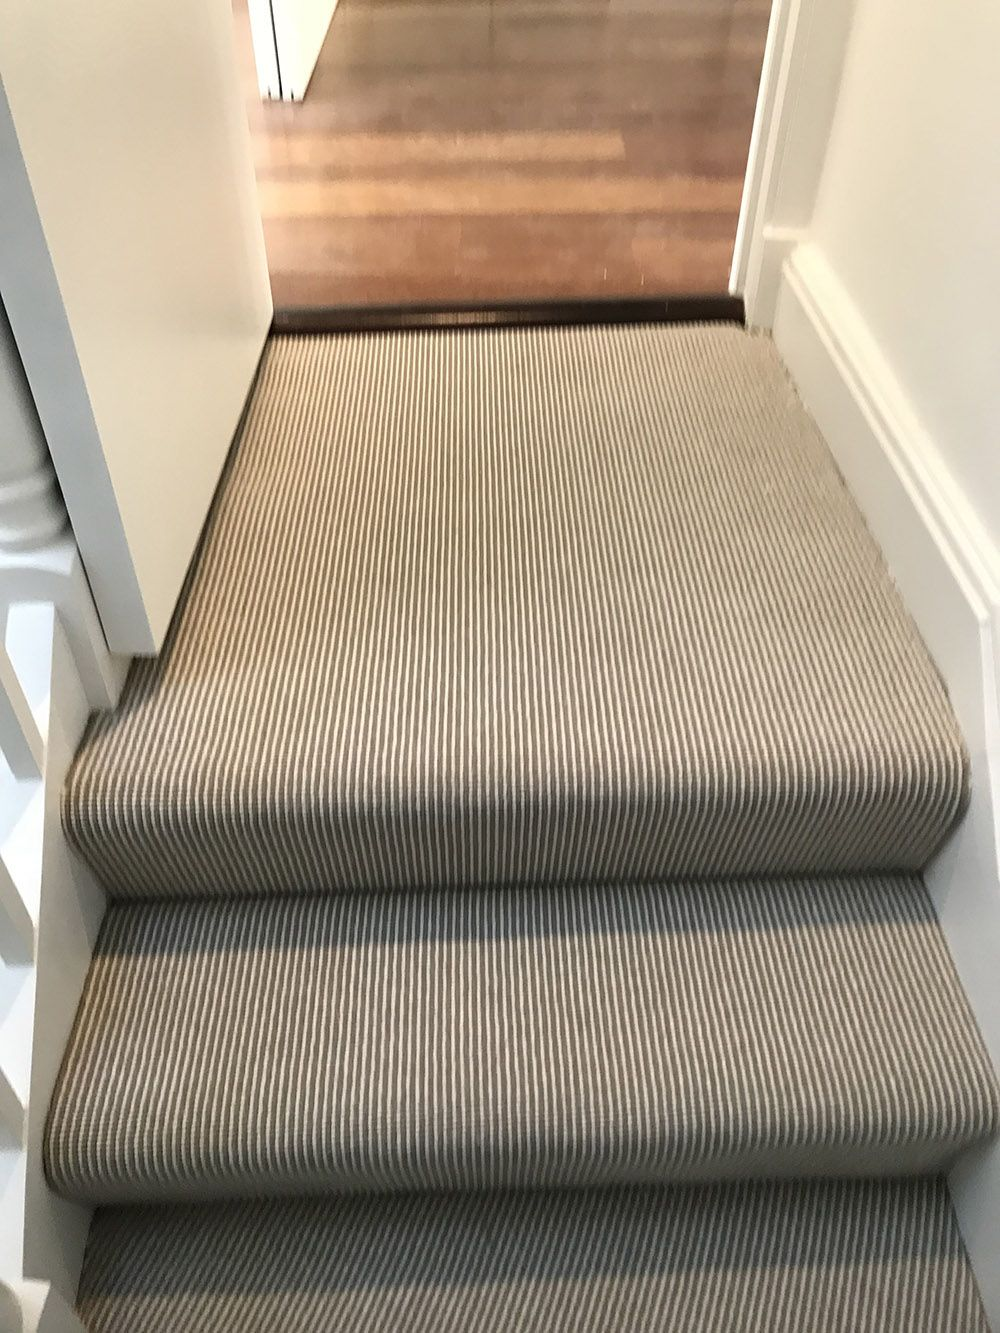 Installing Carpet To Stairs And Rooms In North London Residence #carpet # Stairs #staircase